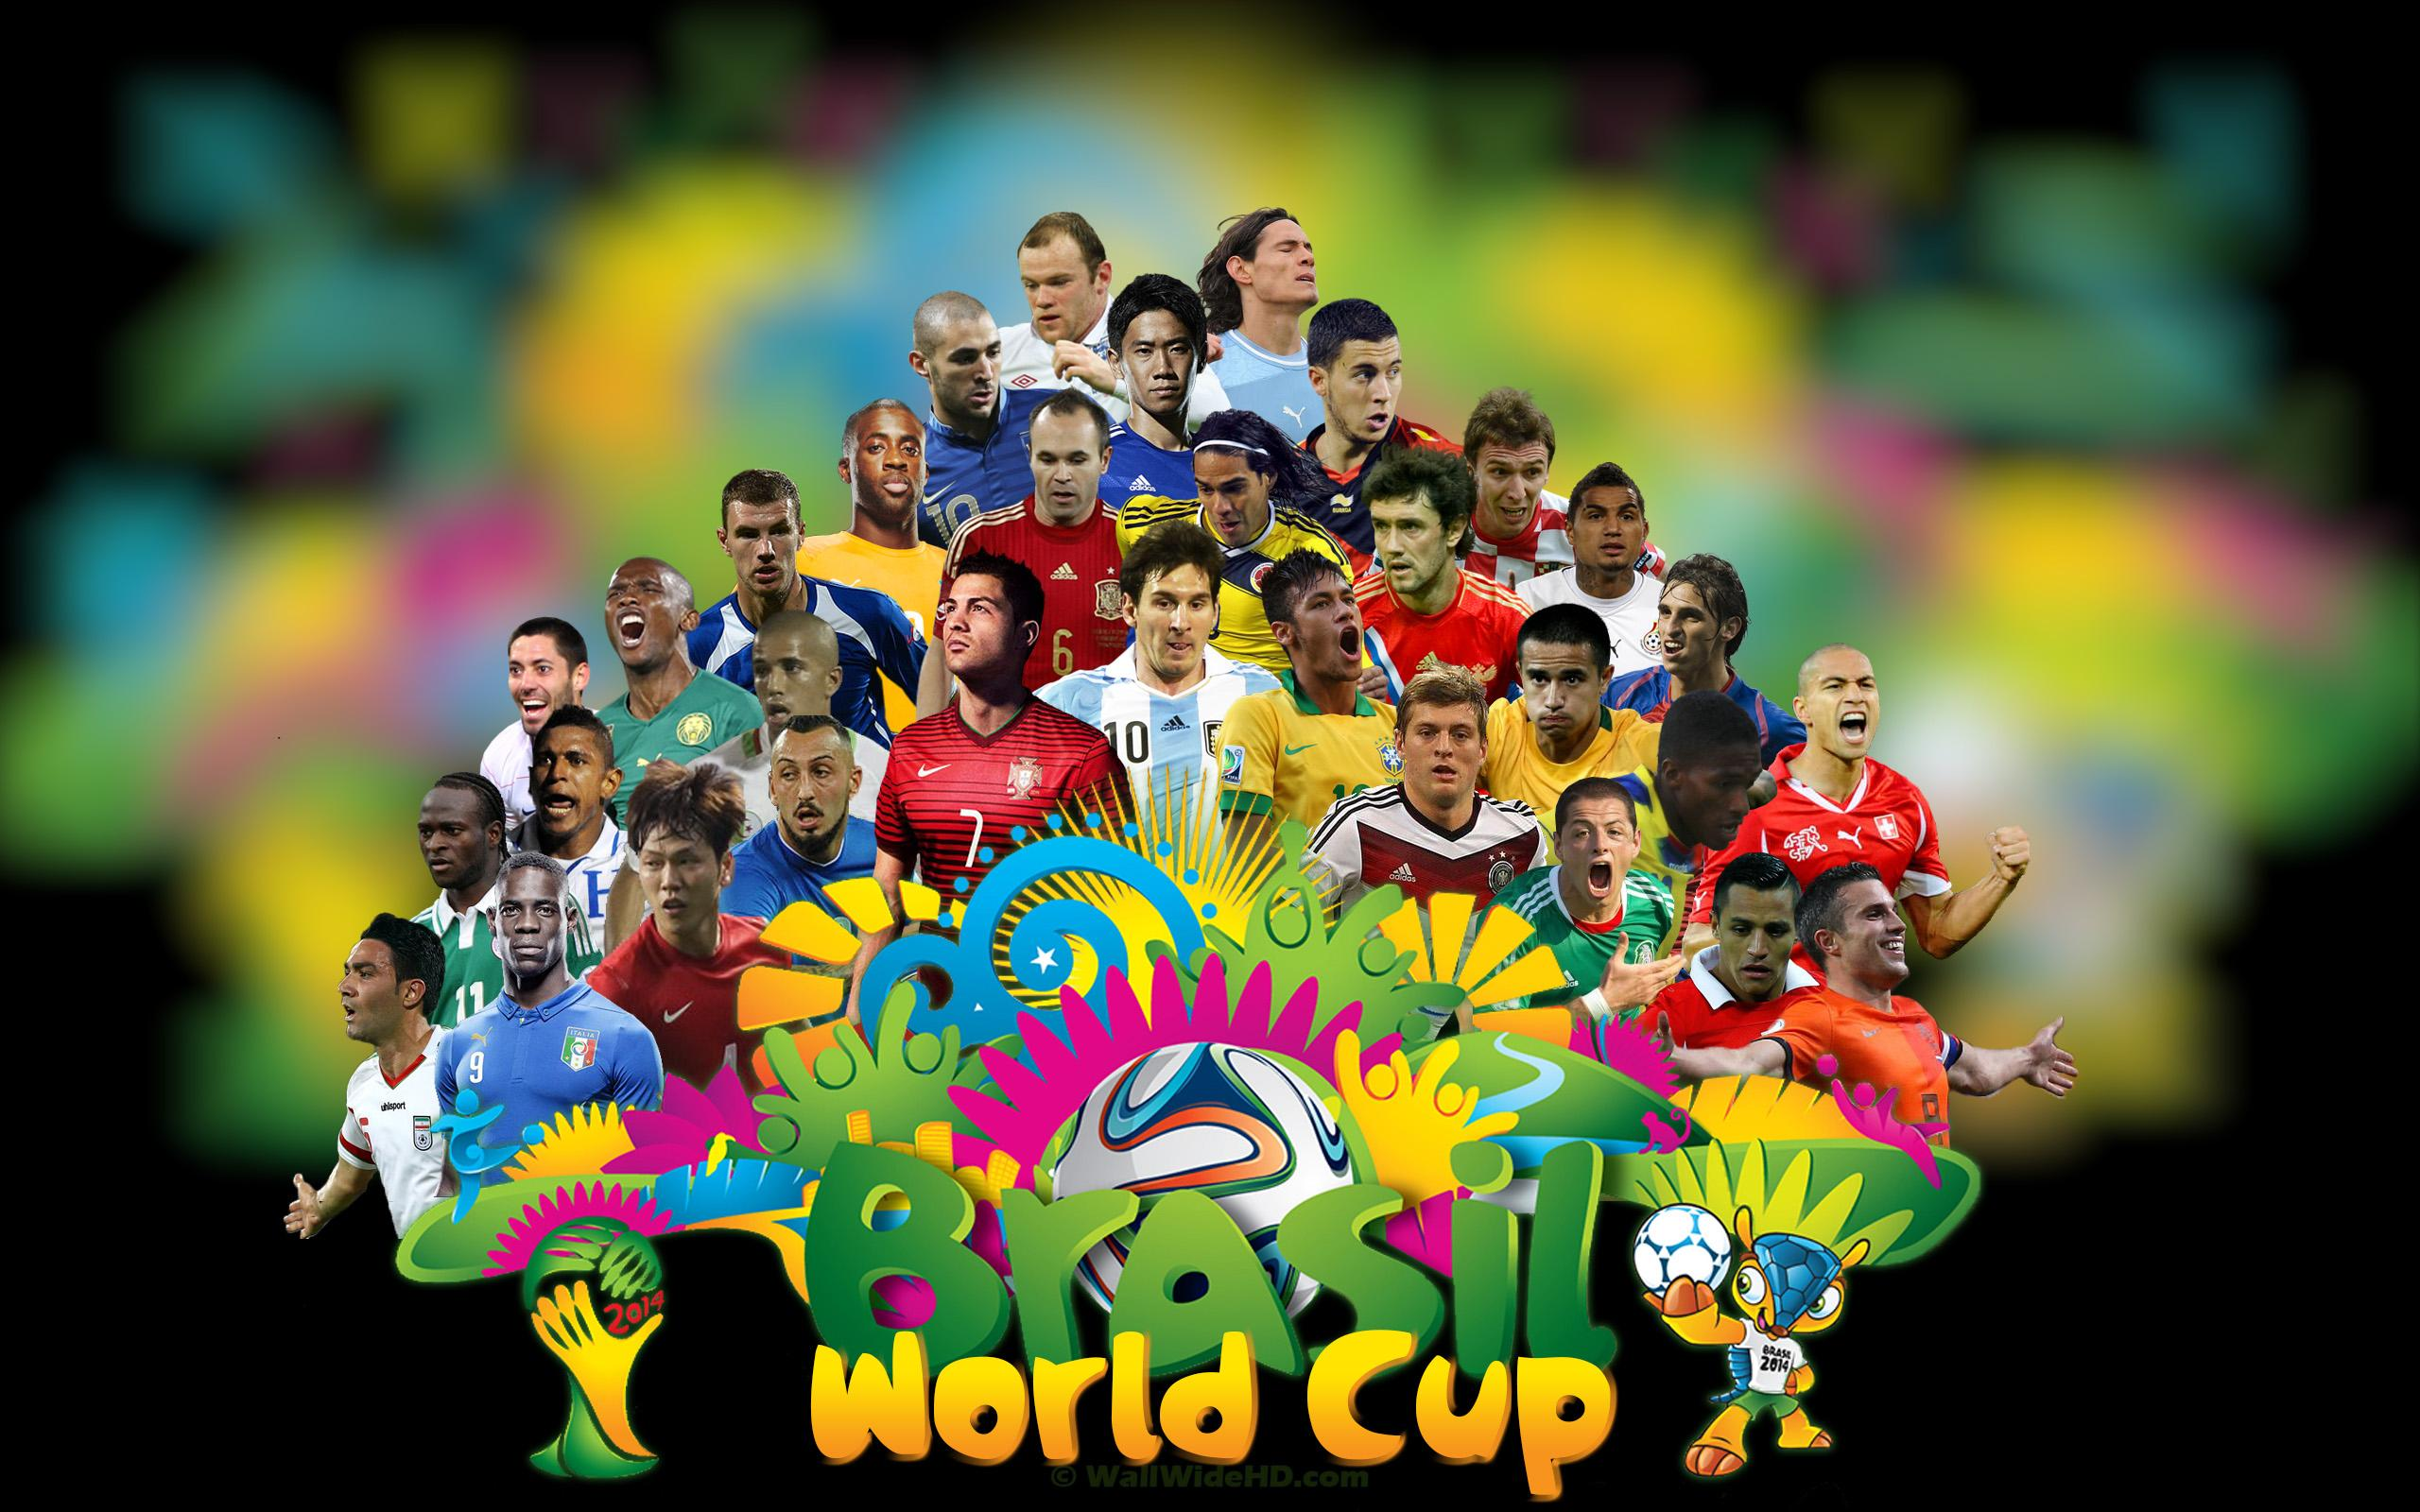 2014 FIFA World Cup Brazil Football Stars